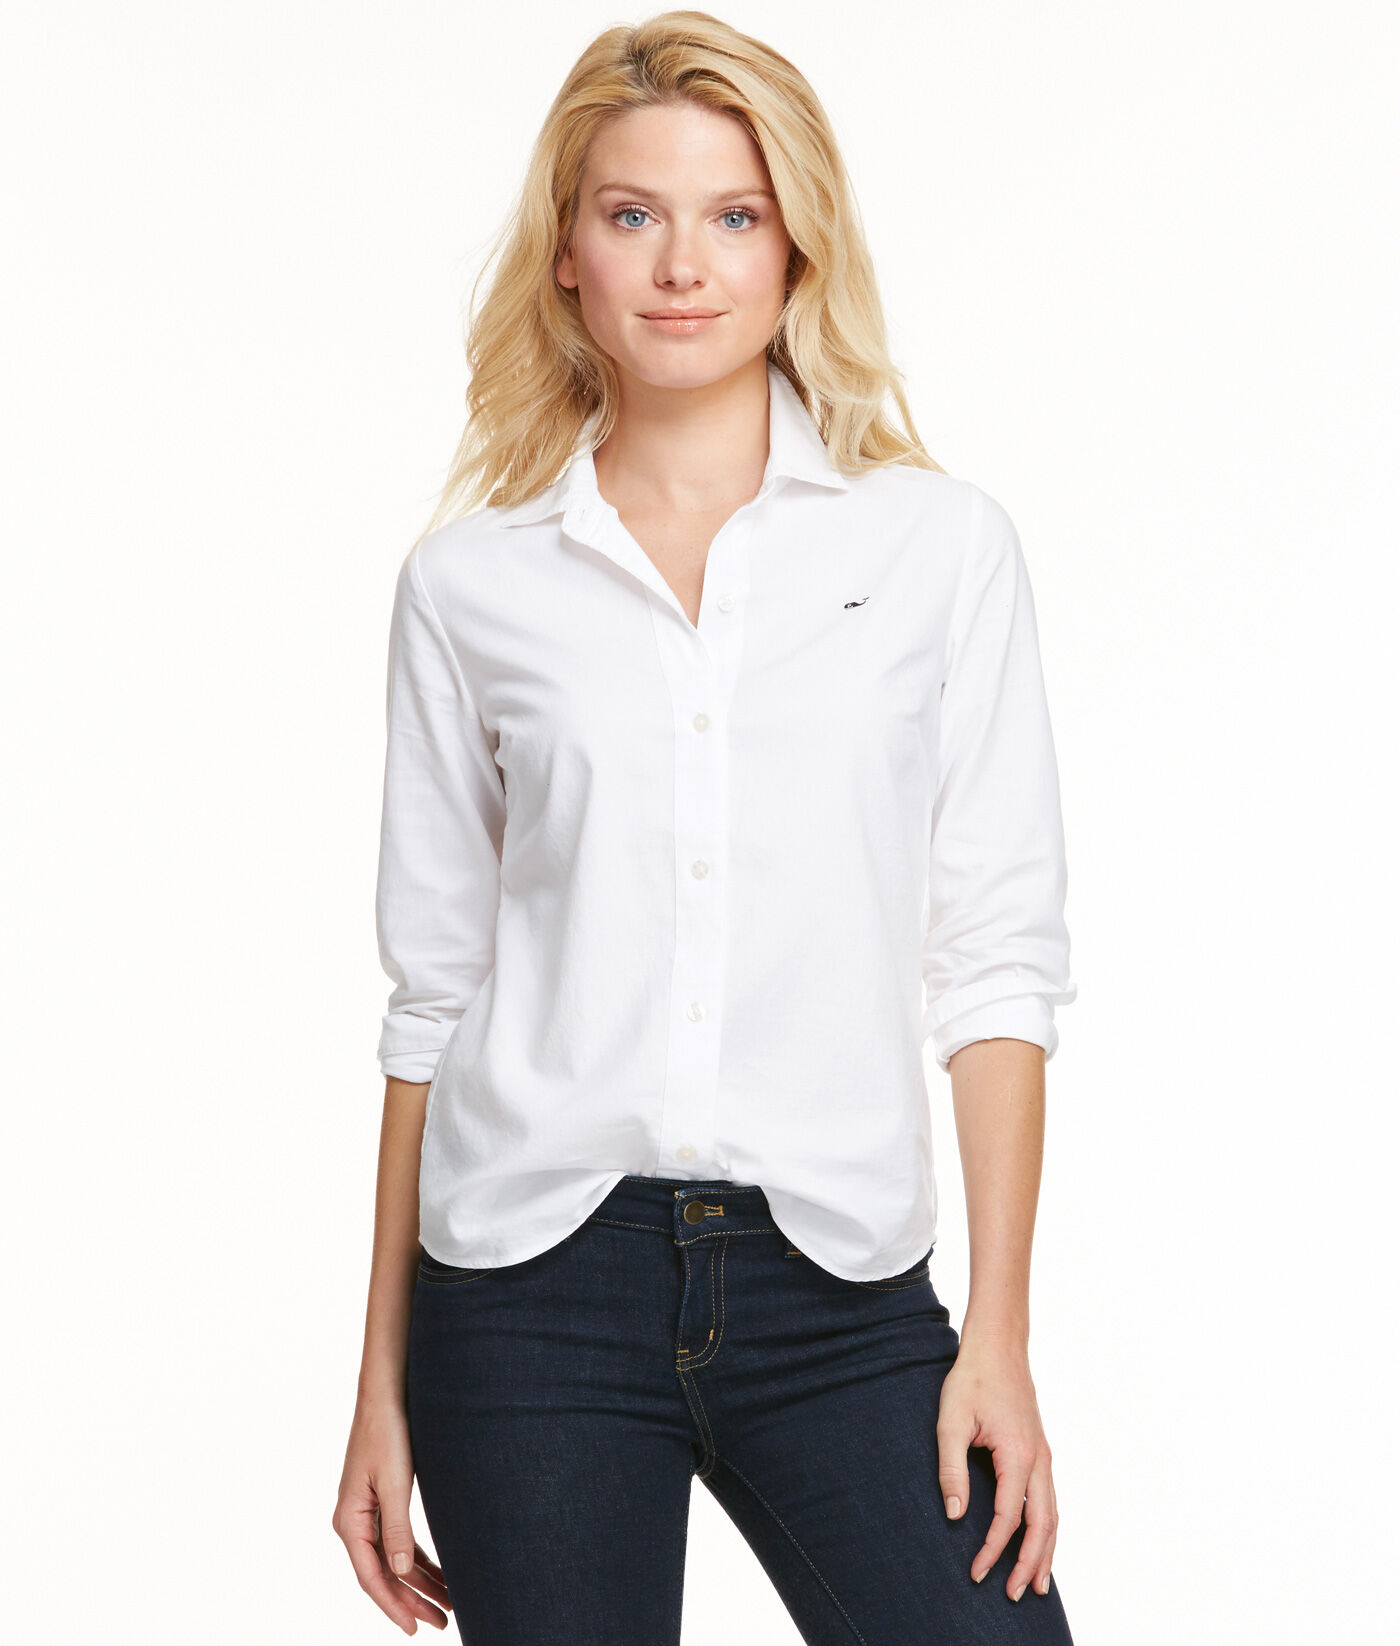 Womens Button Down Shirts